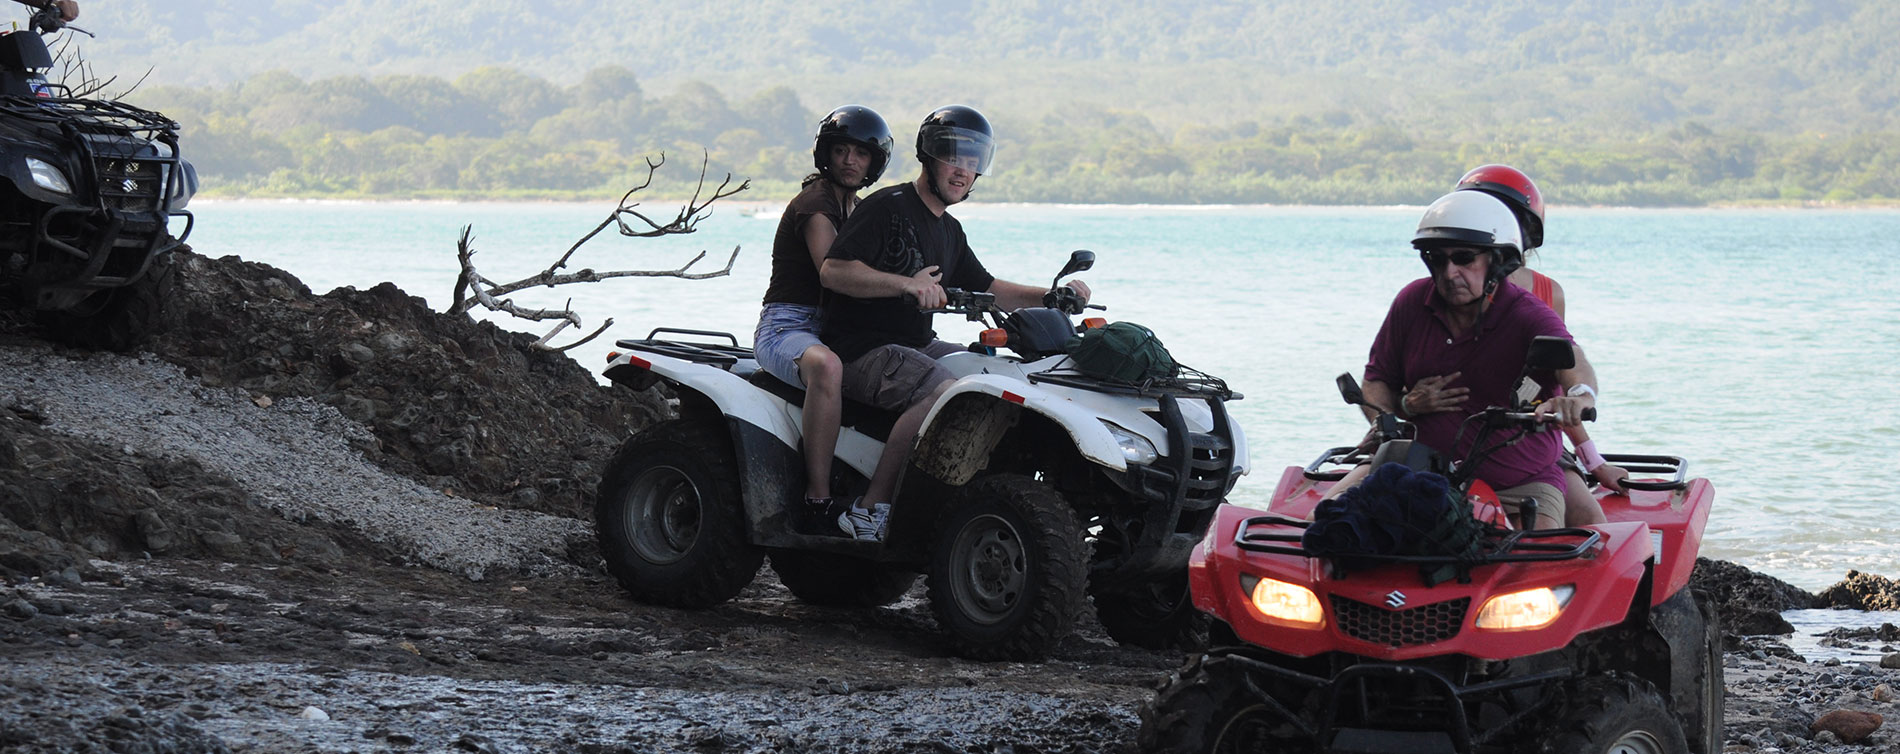 Zuma Tours ATV Rentals and Tours